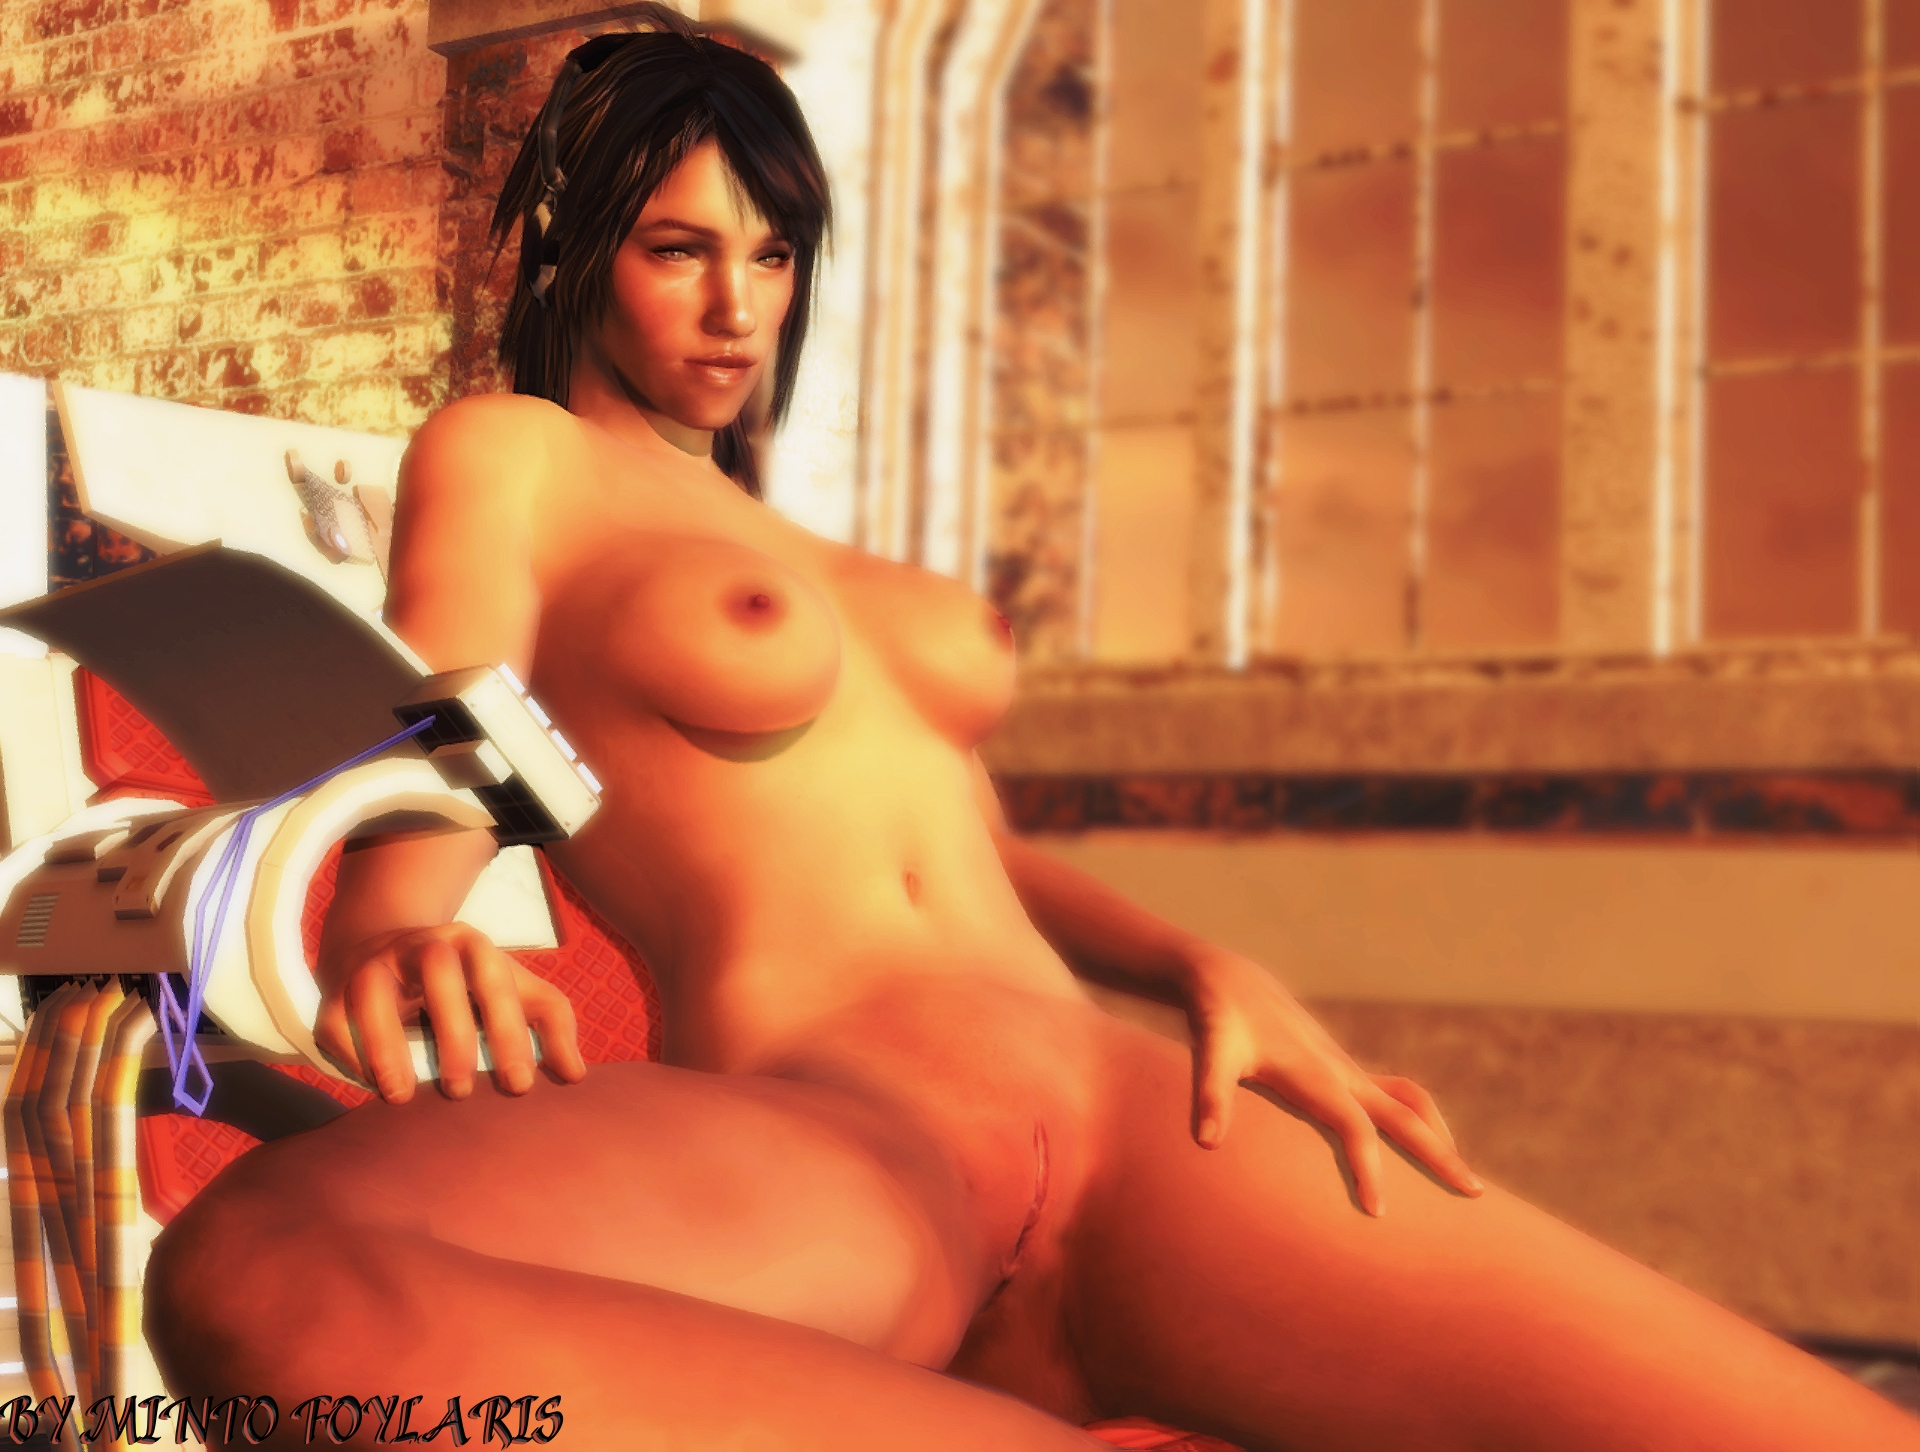 Assassins creed porn gallery porn pics